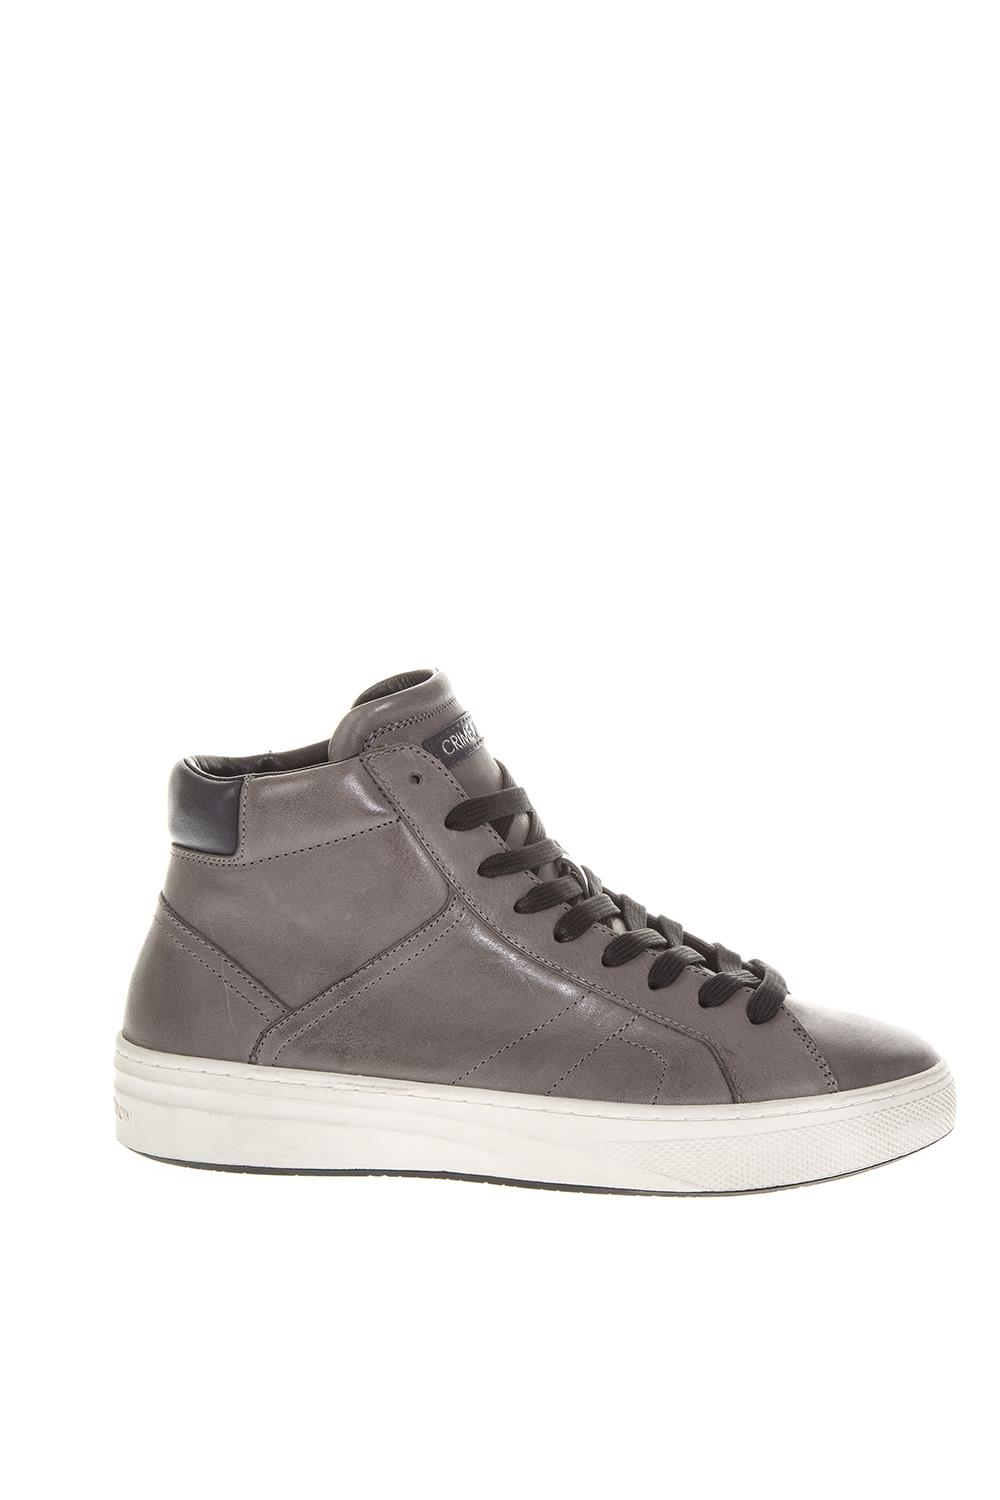 911efe355b14a2 TAUPE LEATHER HIGH-TOP SNEAKERS FW 2018 - CRIME LONDON - Boutique Galiano